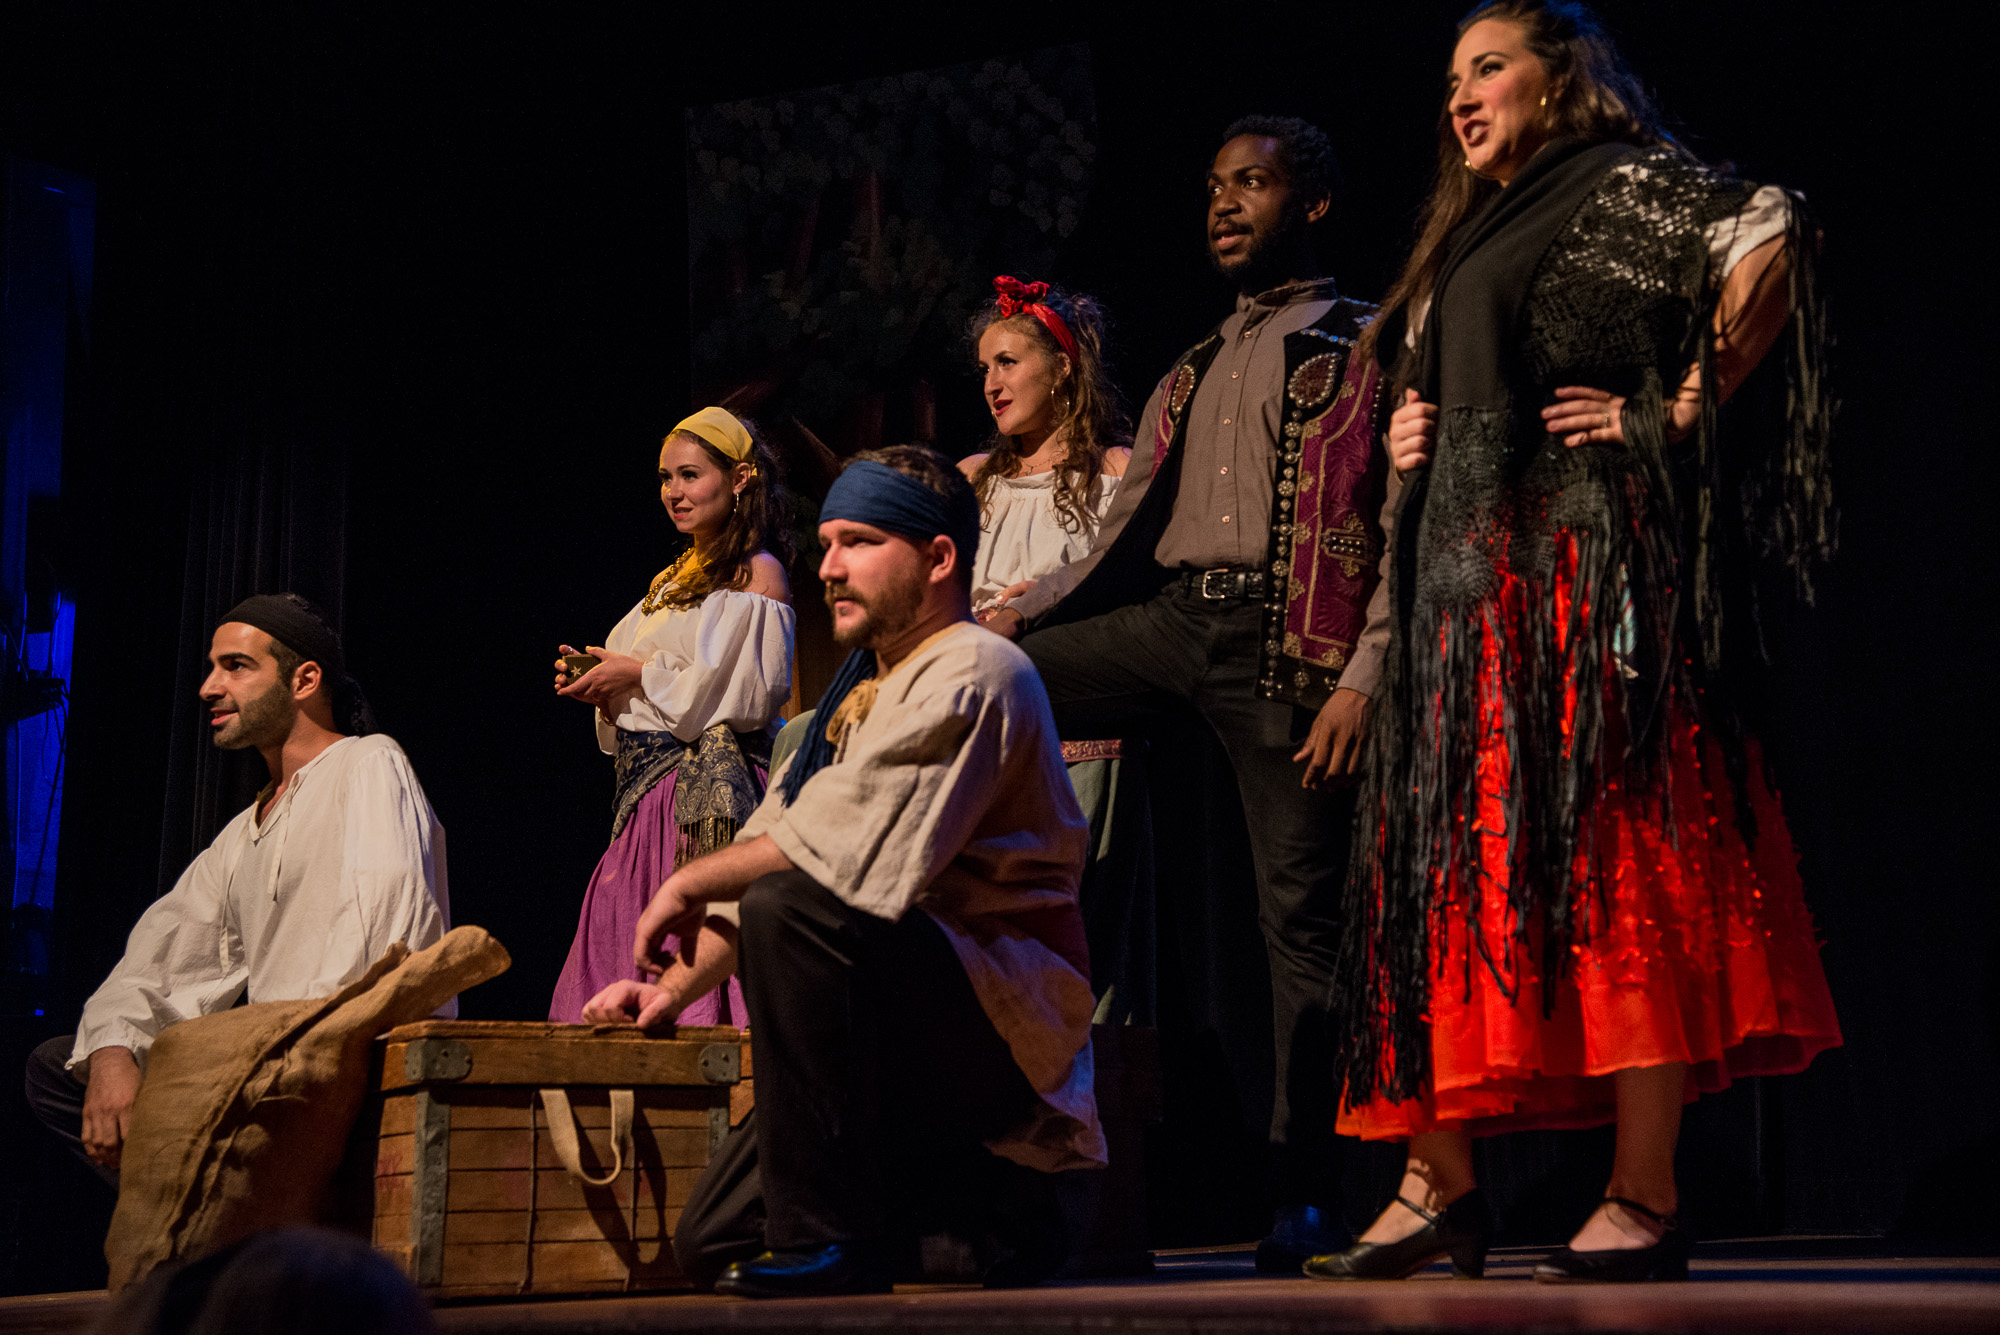 As the gypsy Frasquita in  Carmen  with Delaware Valley Opera  photo by: Kent Fairfield